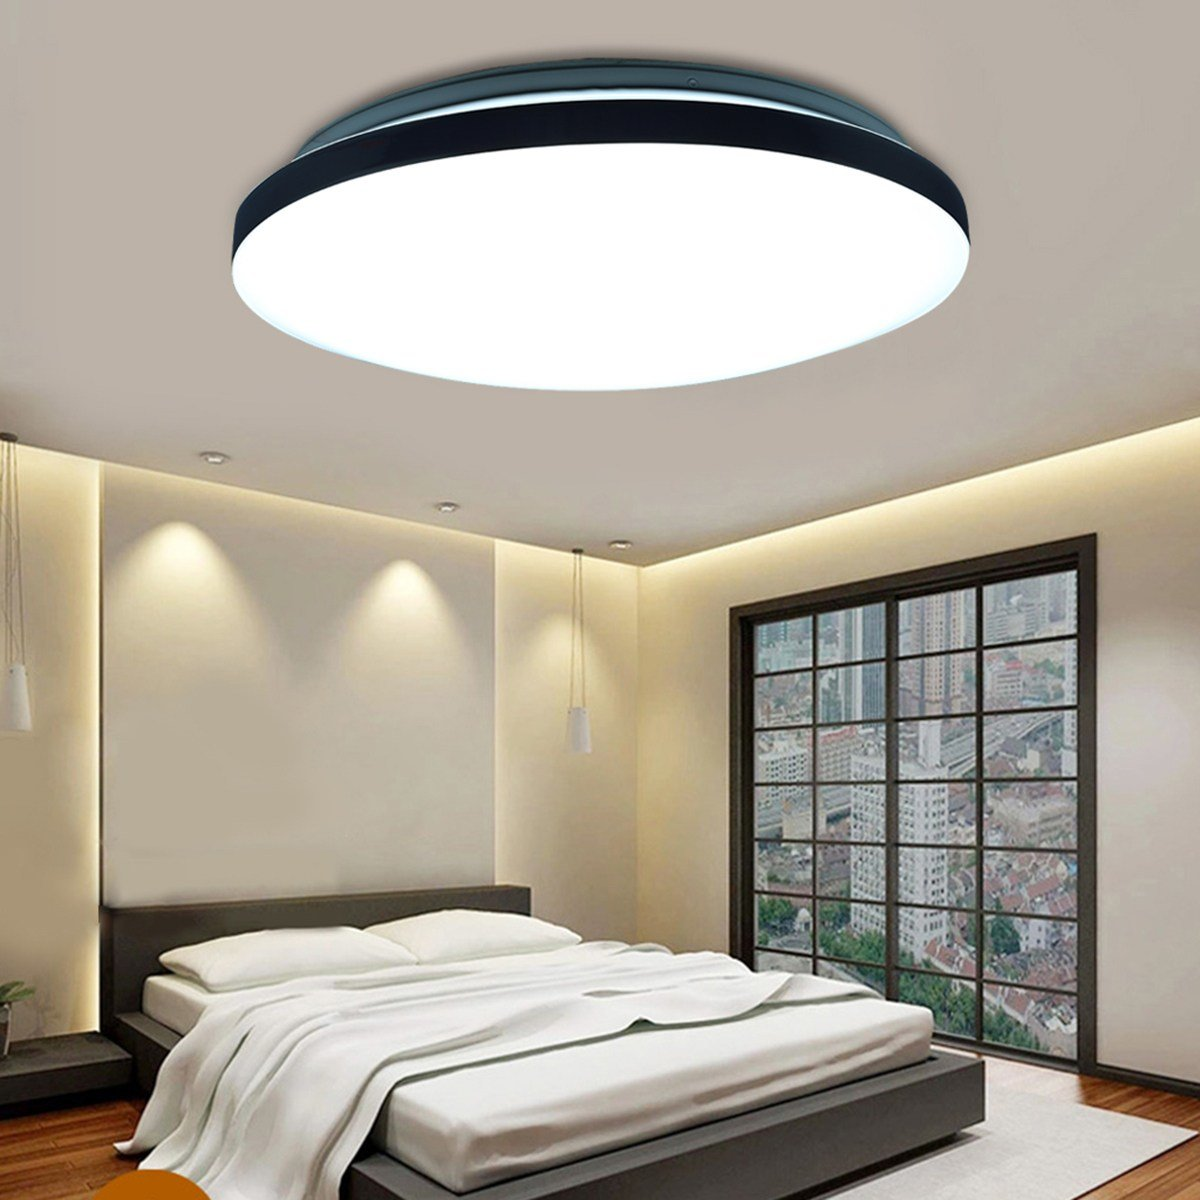 Best 18W Round Led Ceiling Light Fixture Lighting Flush Mount With Pictures